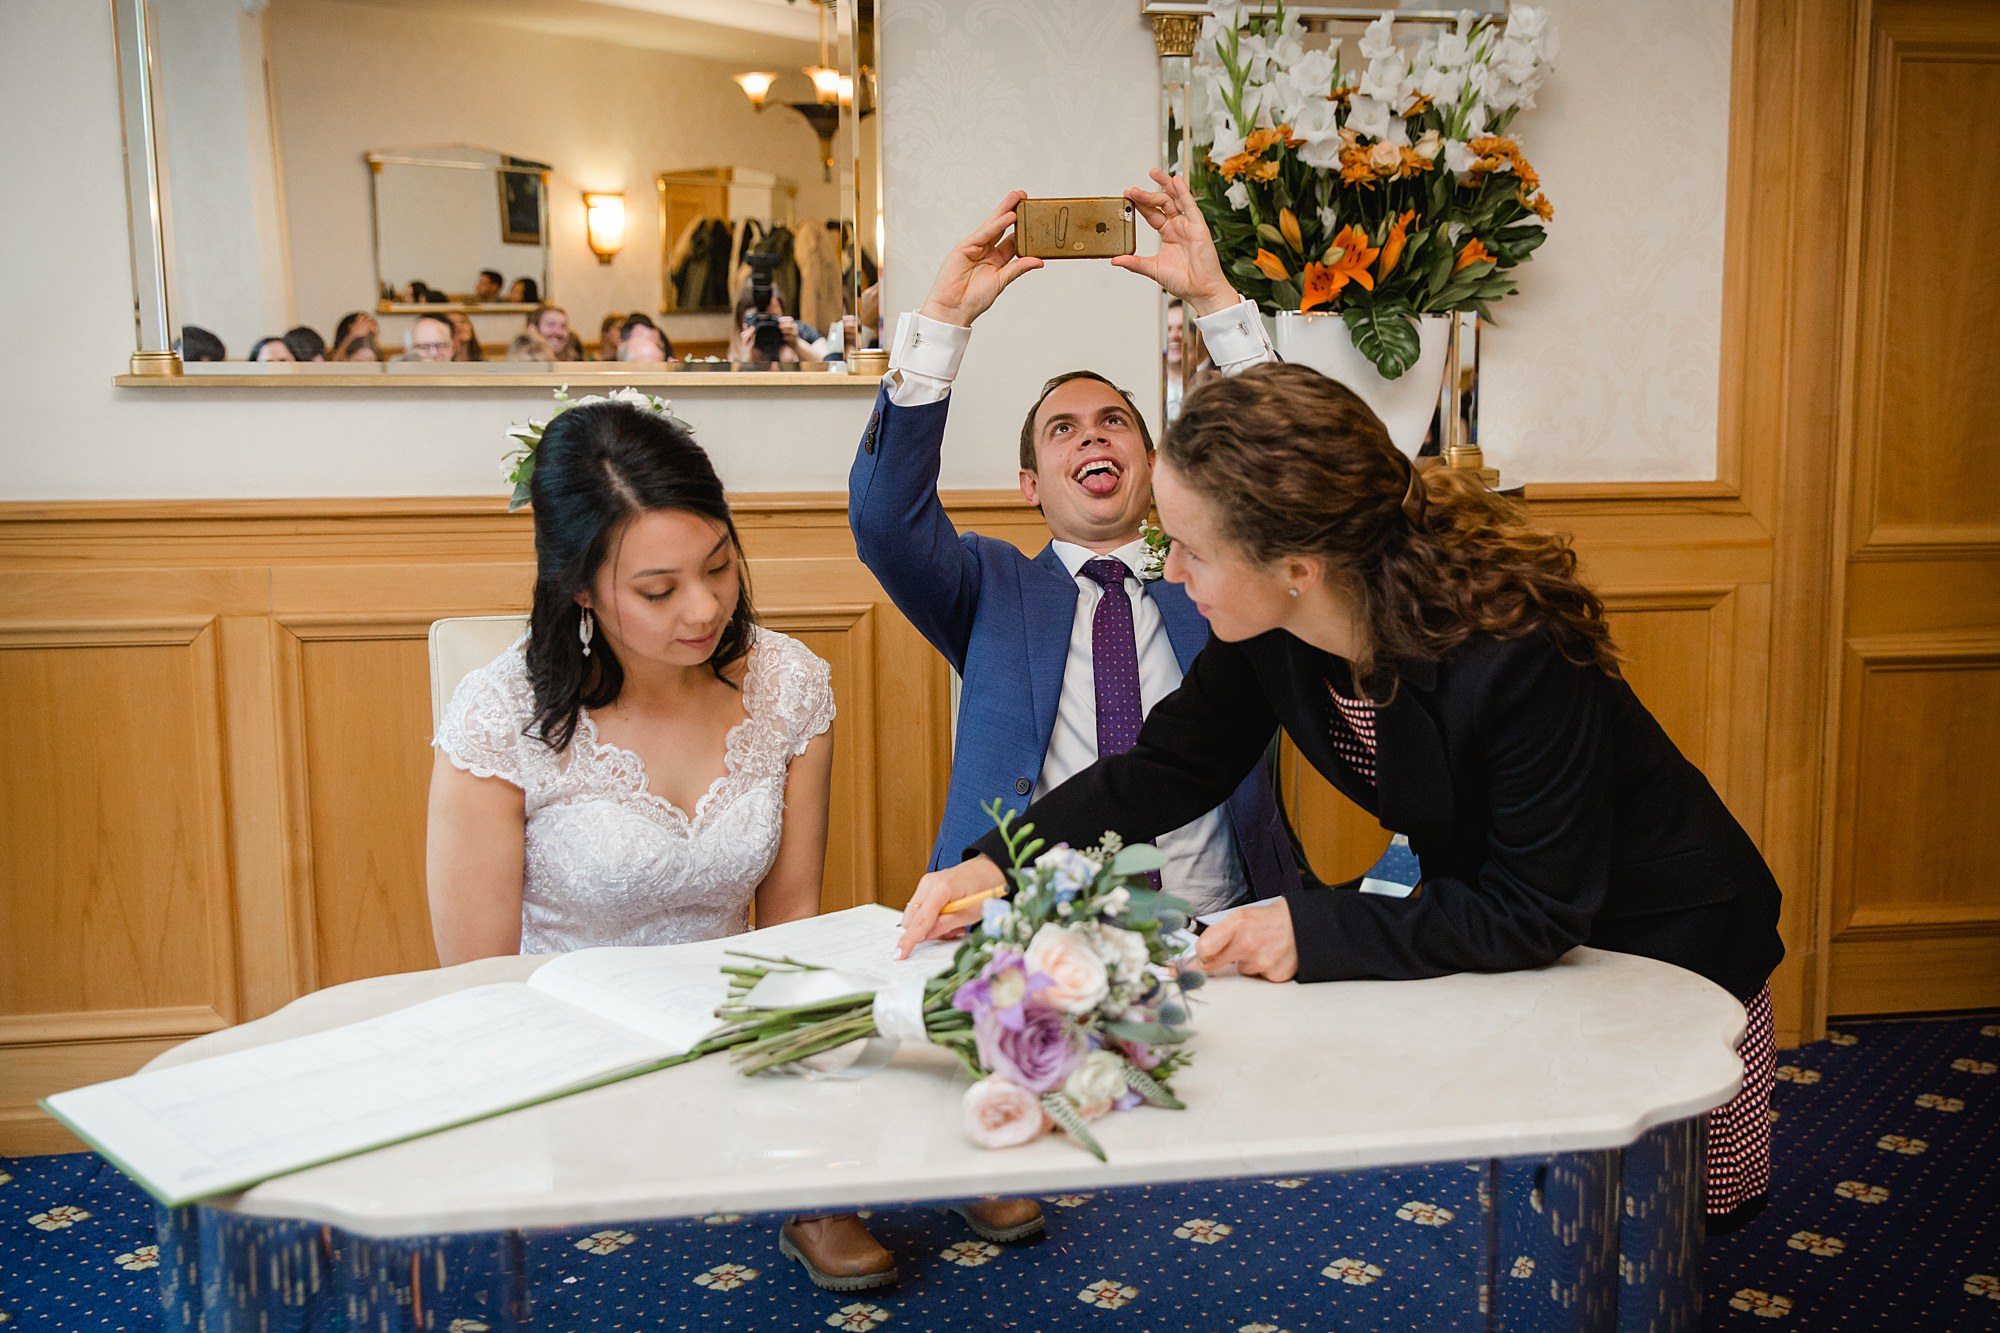 Wandsworth pub wedding groom takes selfie with register